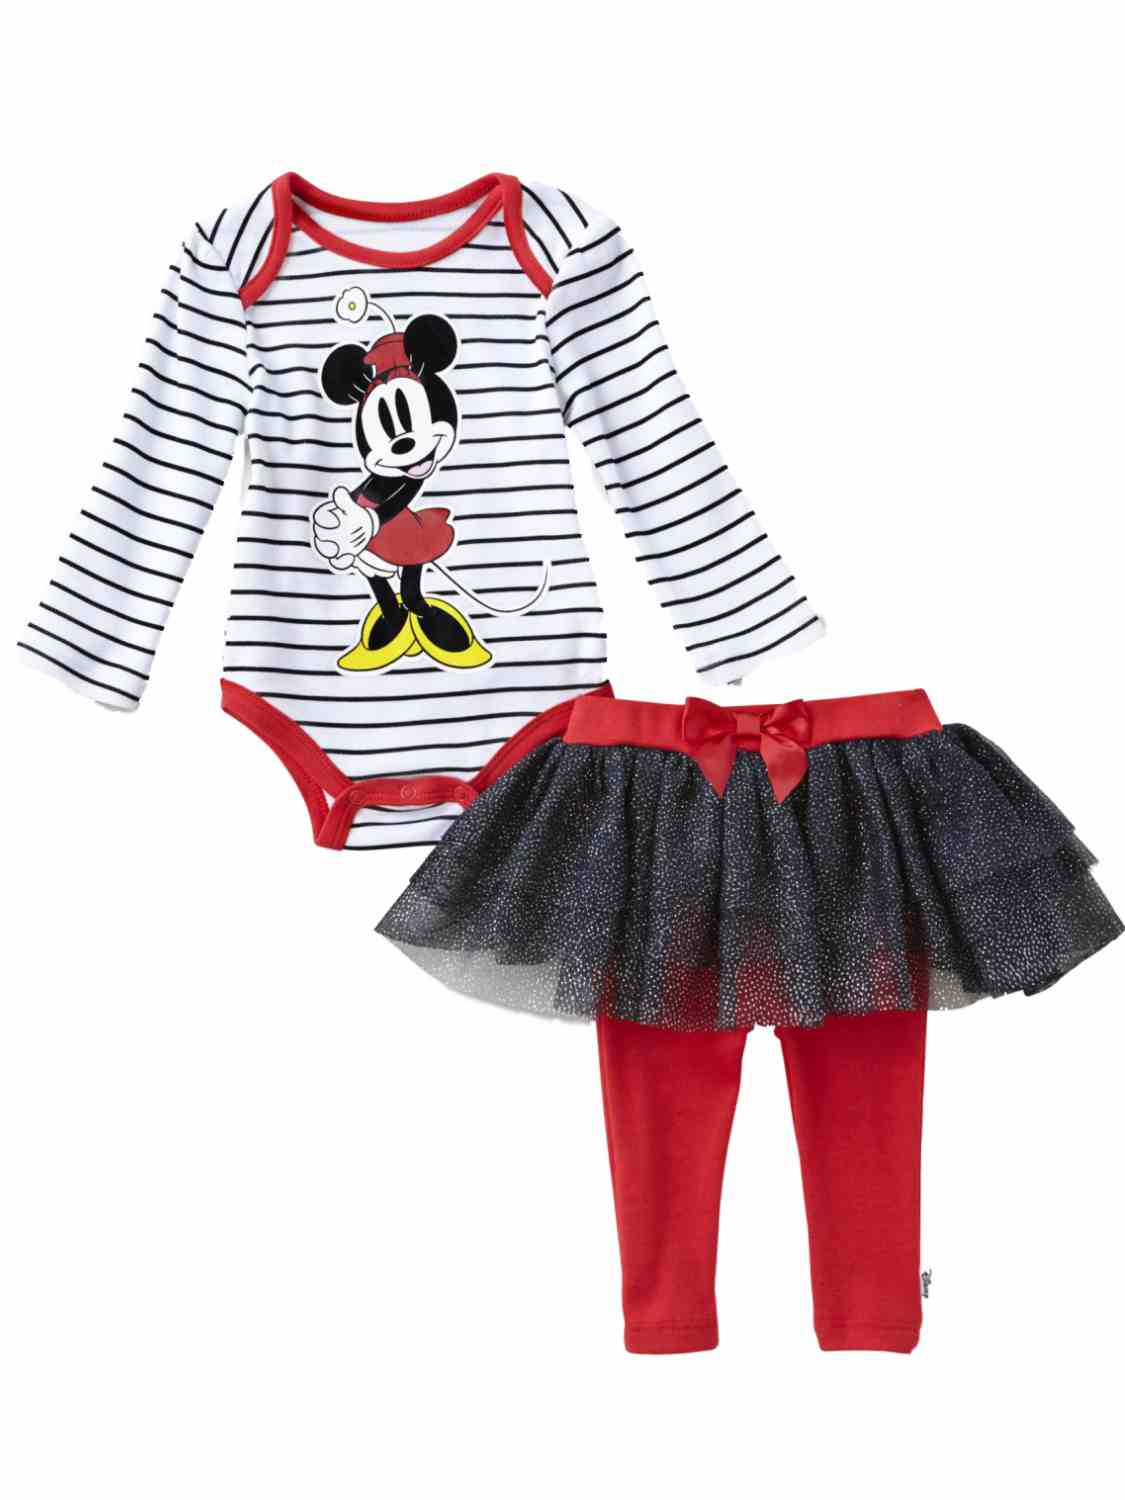 Disney Infant Girls Minnie Mouse Baby Outfit Stripe Shirt Red & Black Tutu Pants